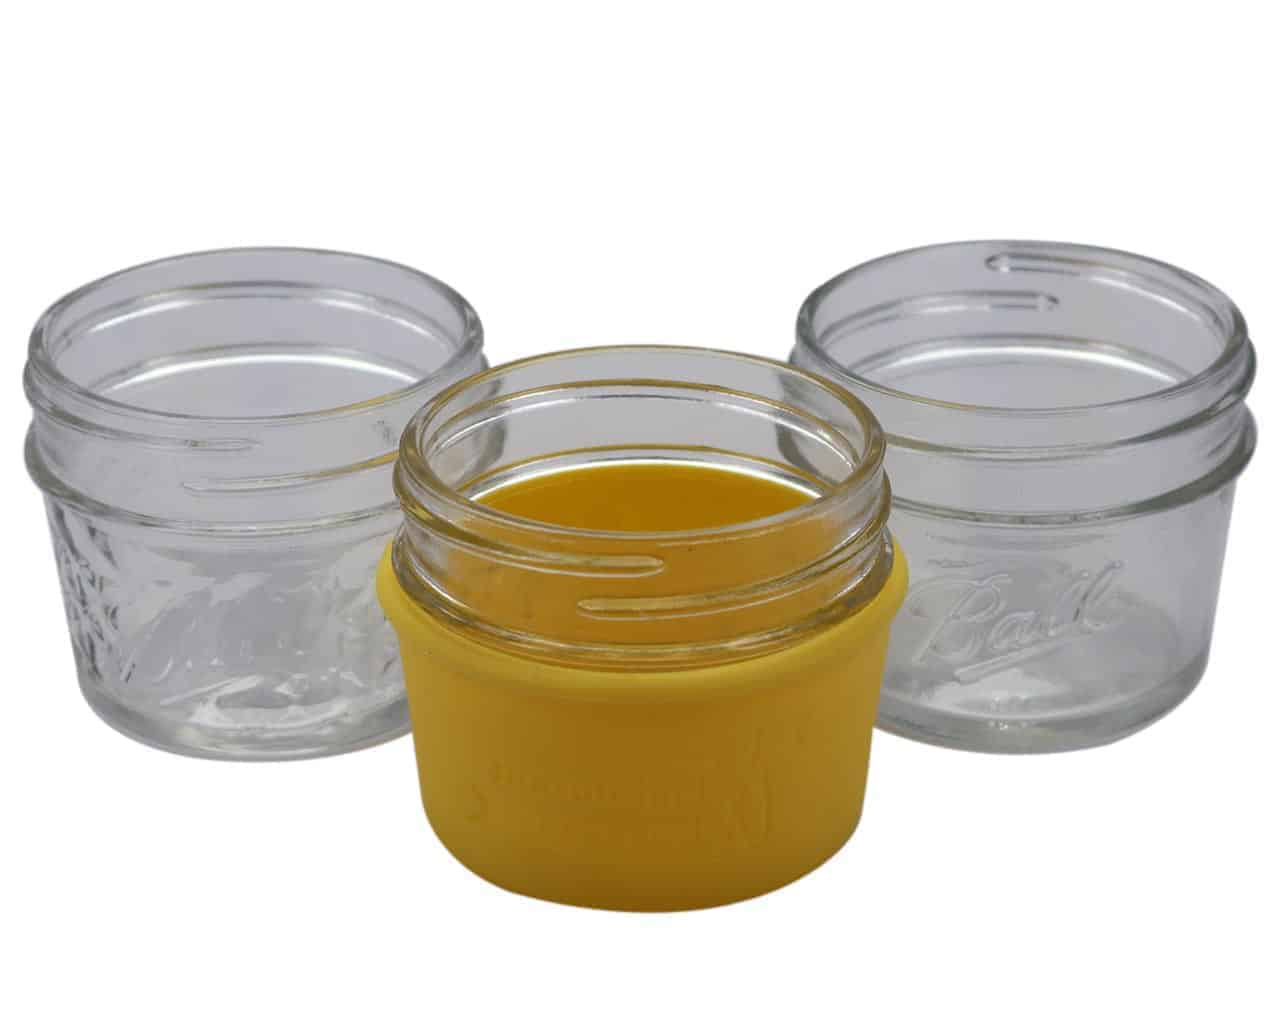 ball 4 oz mason jars. ball 4 oz mason jars